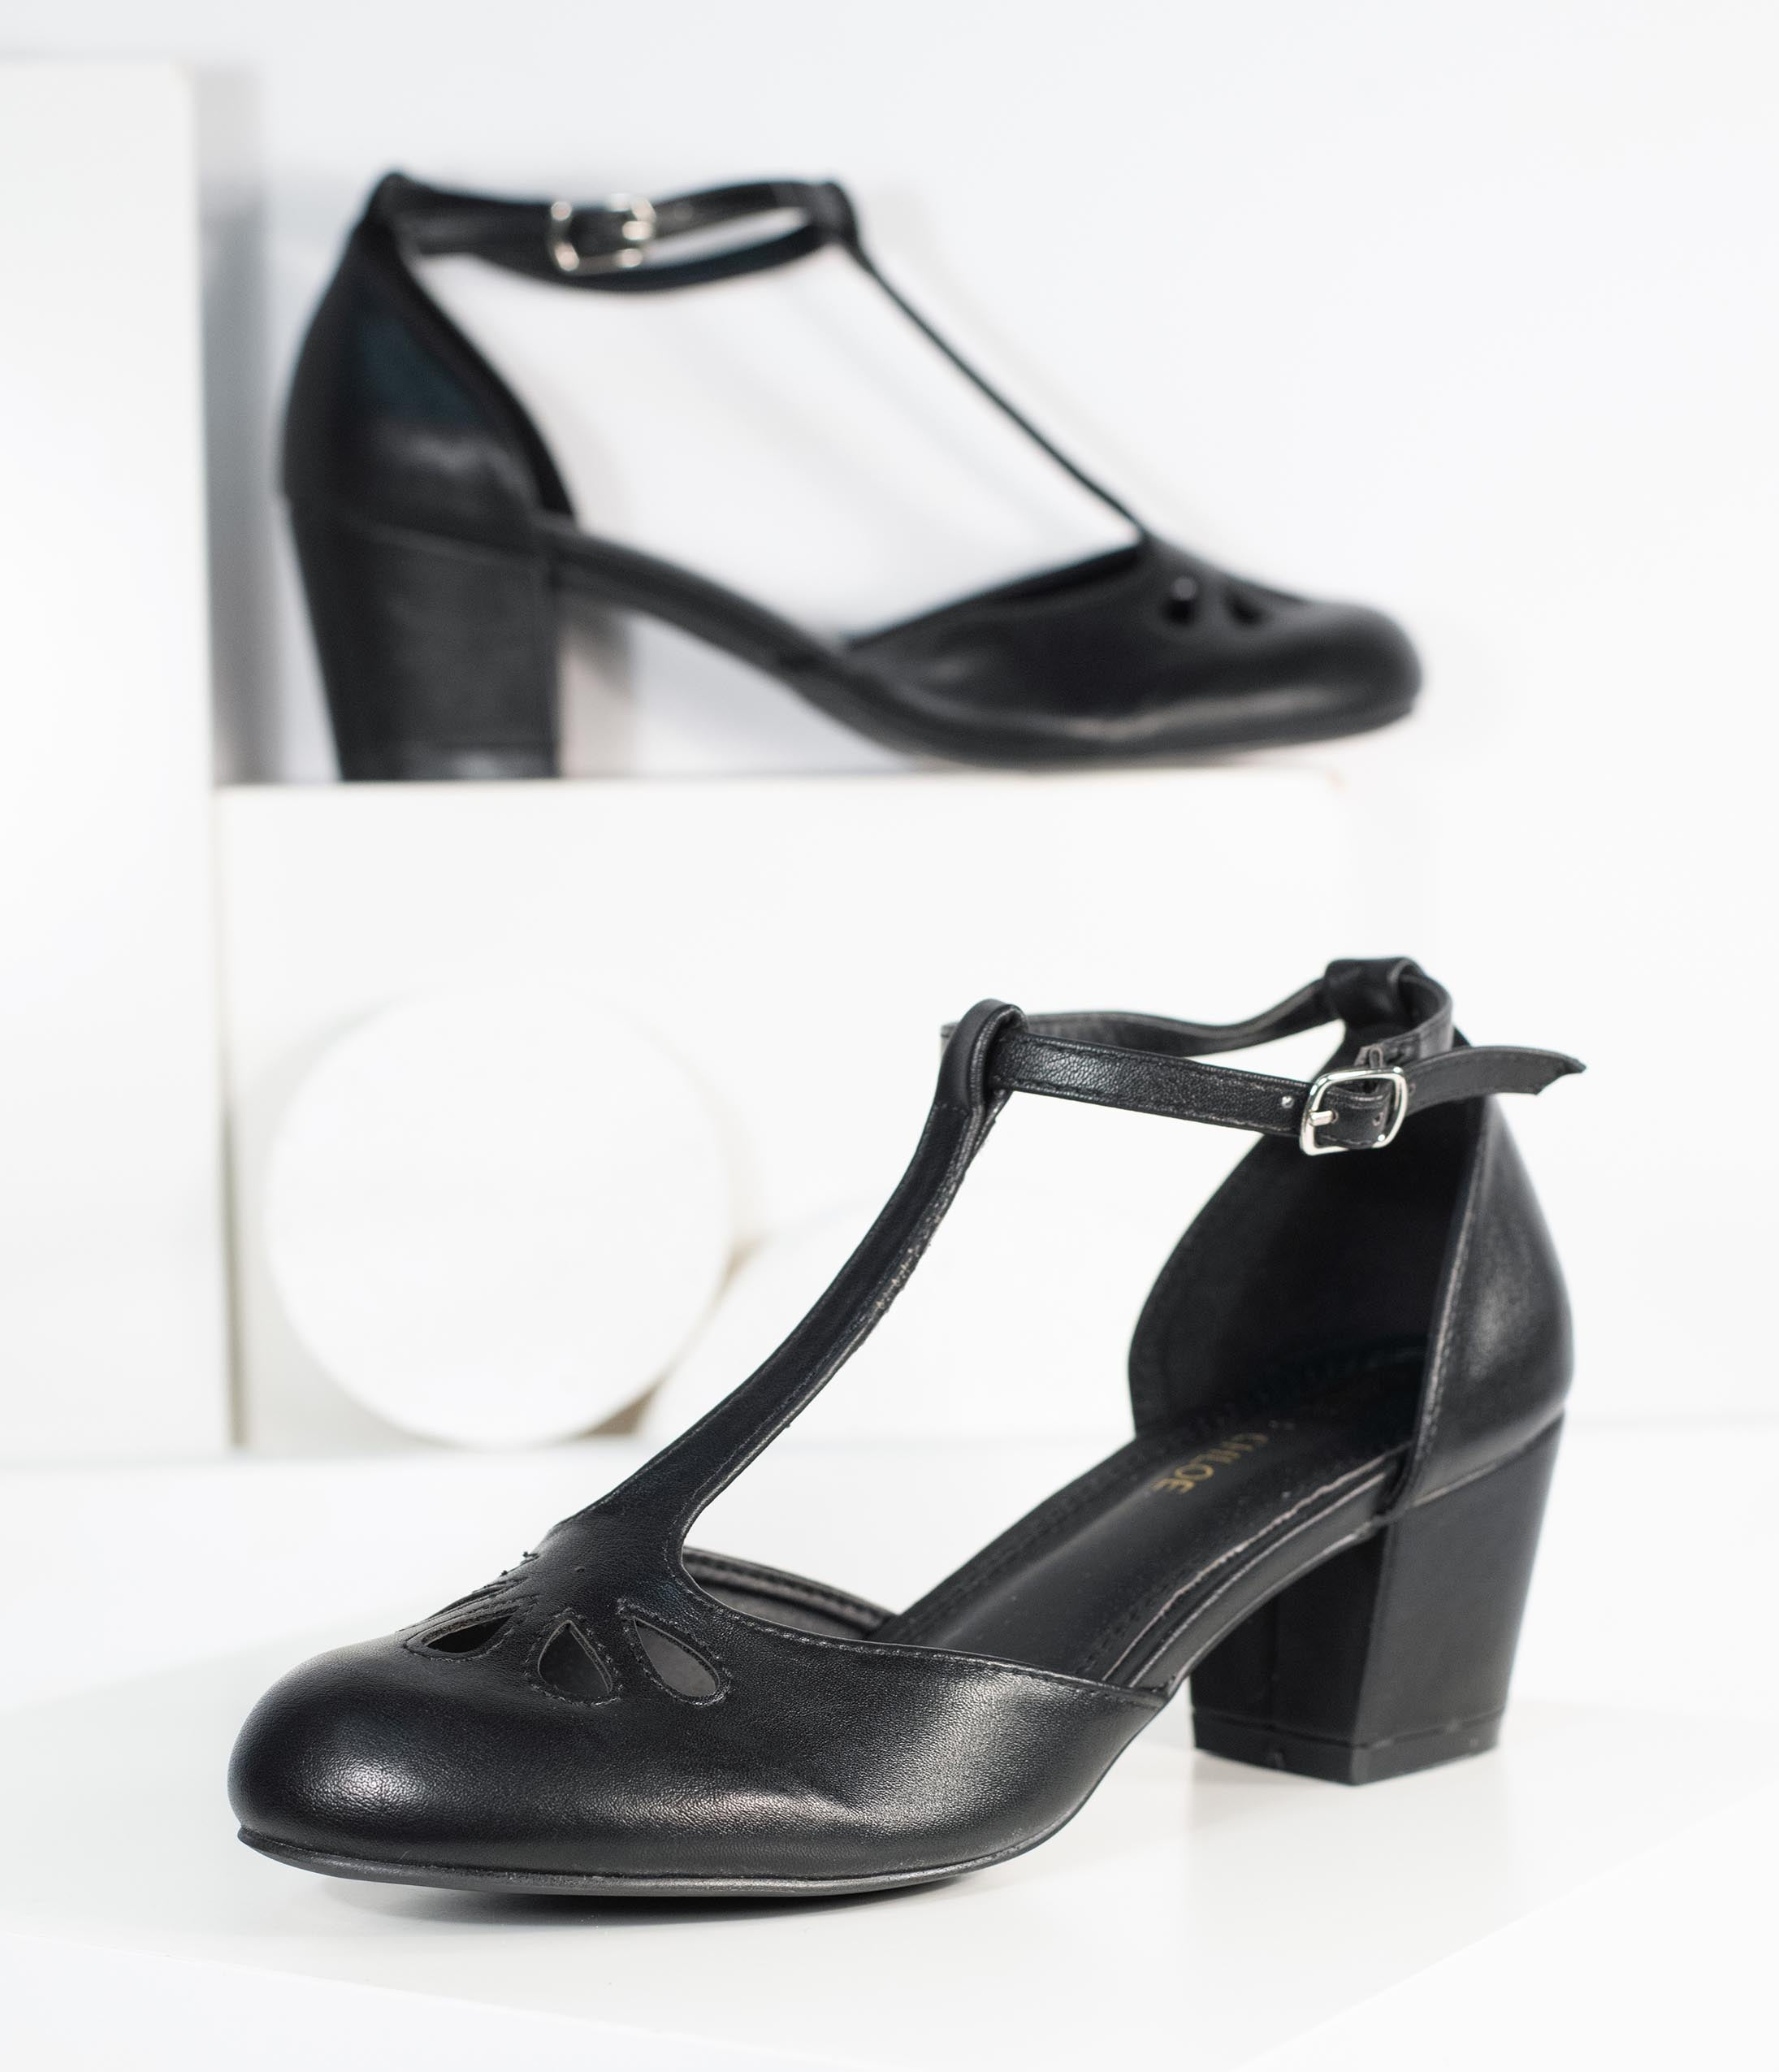 Women's 1920s Shoe Styles and History Black Leatherette Minny T-Strap Heels $48.00 AT vintagedancer.com